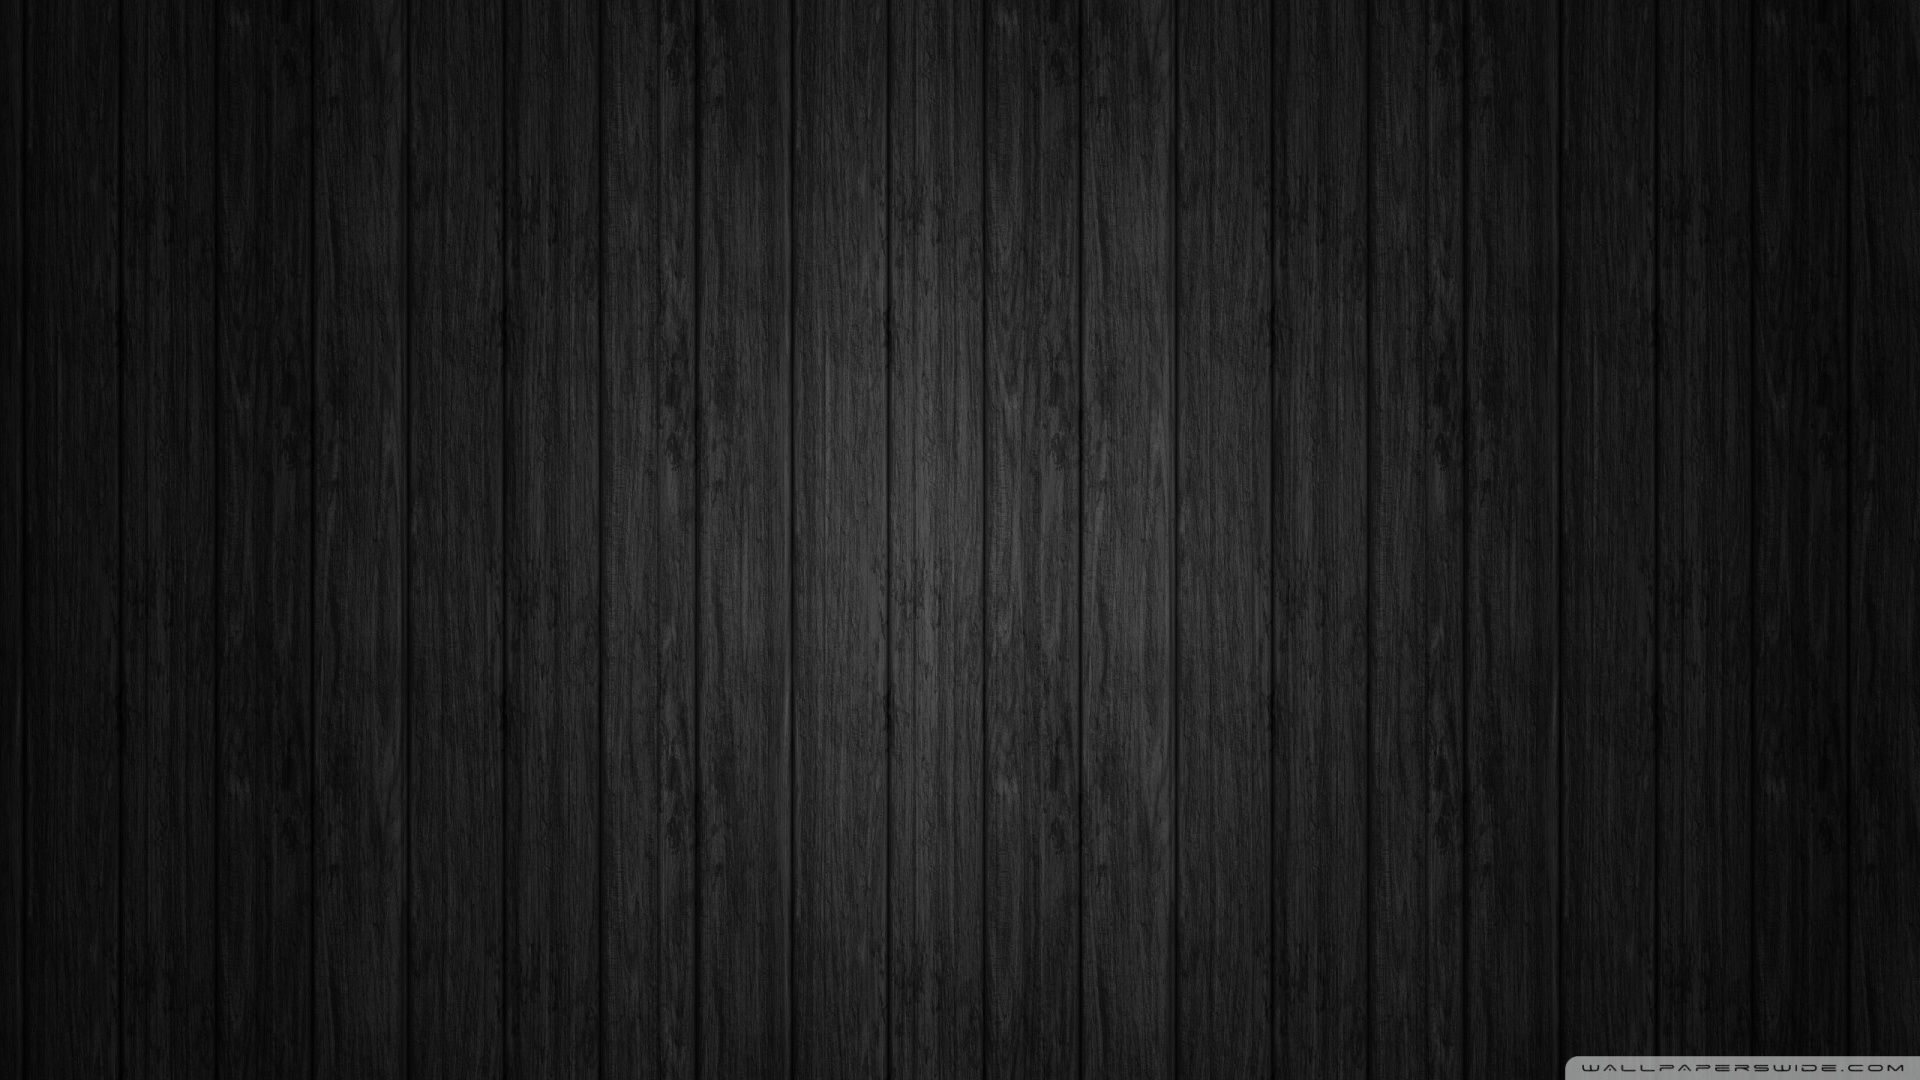 Prostoj Chernyj Fon Oboev Black Background Wallpaper Black Hd Wallpaper Black Wood Background